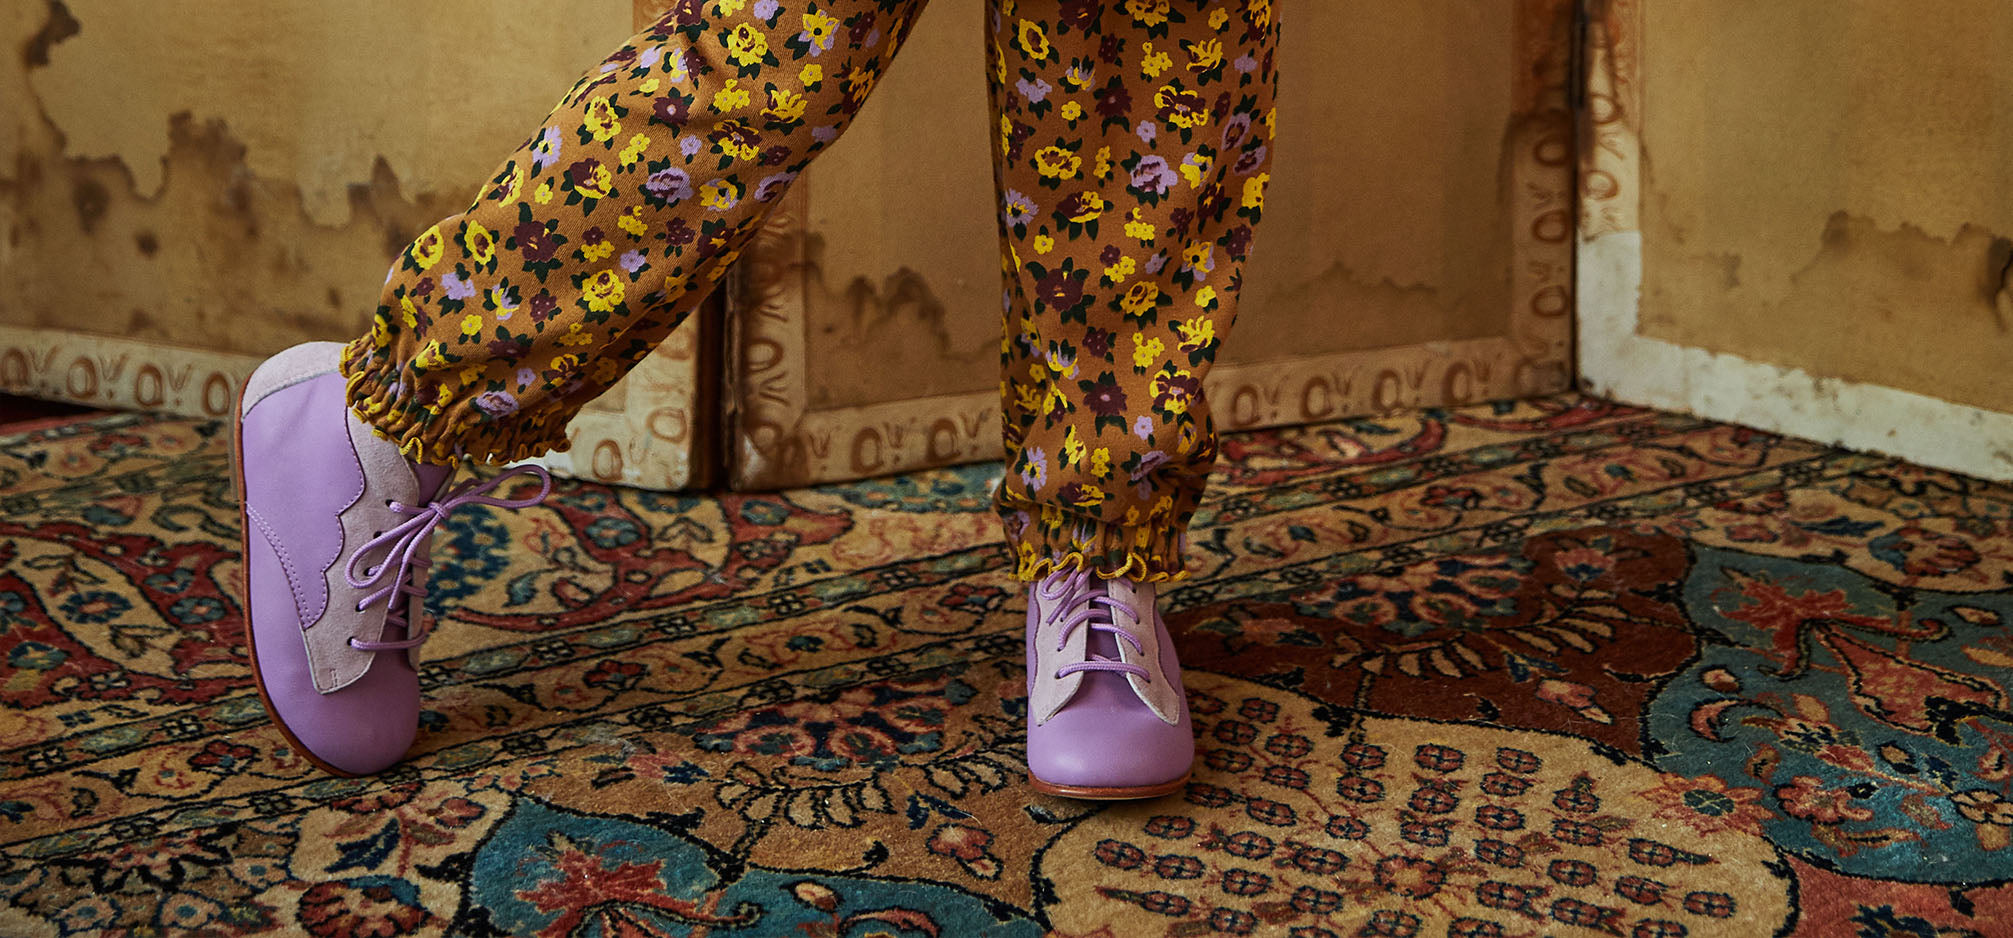 A girl wearing lavender purple boots.